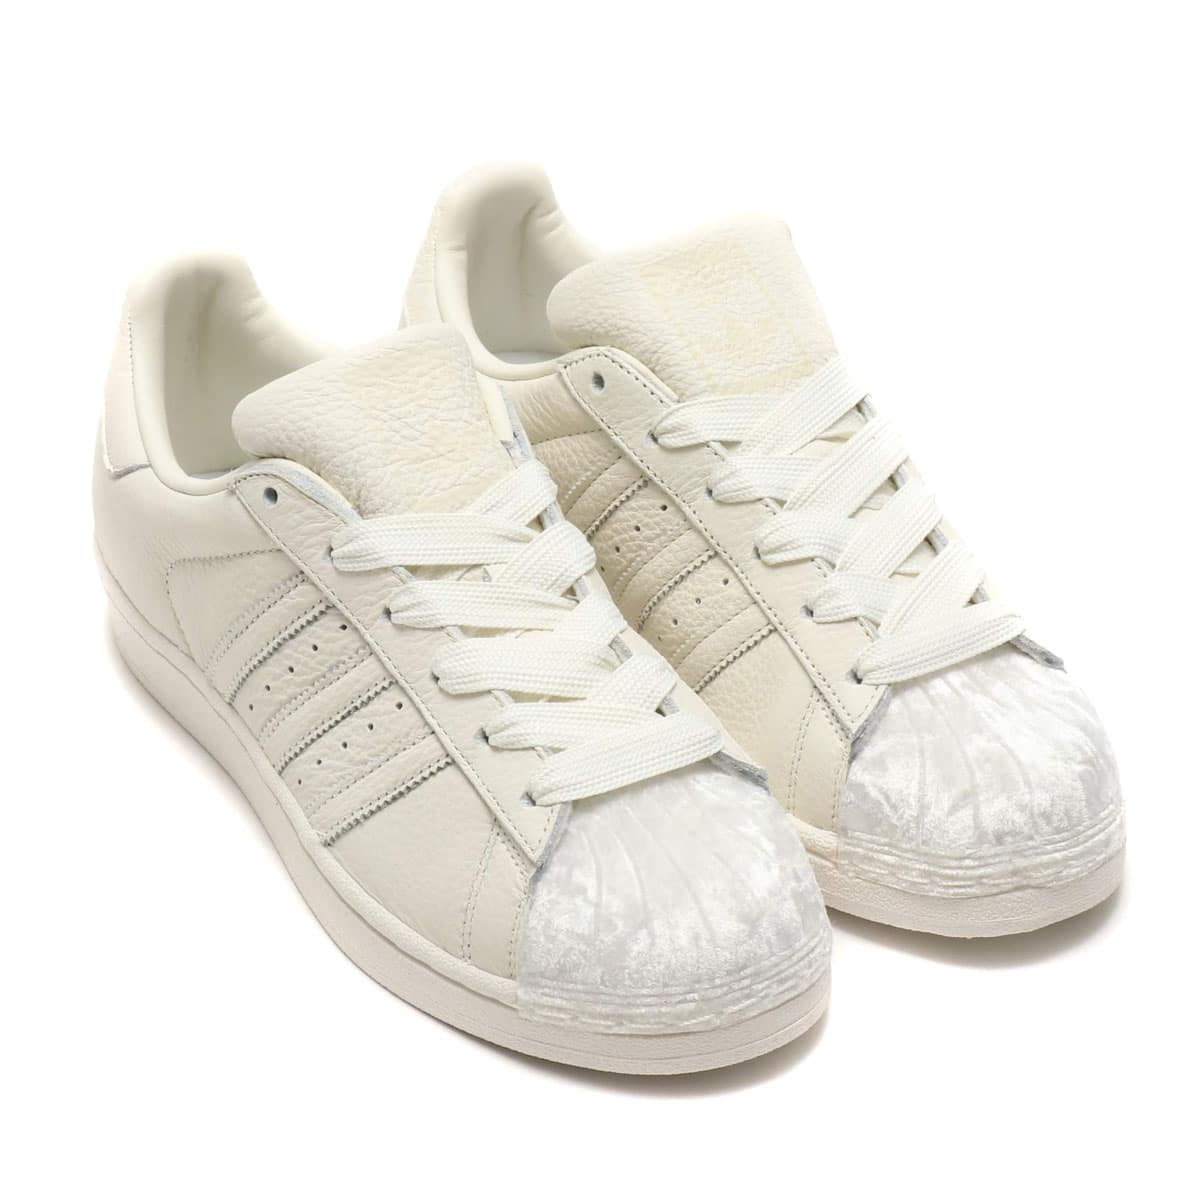 adidas Originals SUPERSTAR W OFF WHITE/OFF WHITE/OFF WHITE 19SS-I_photo_large